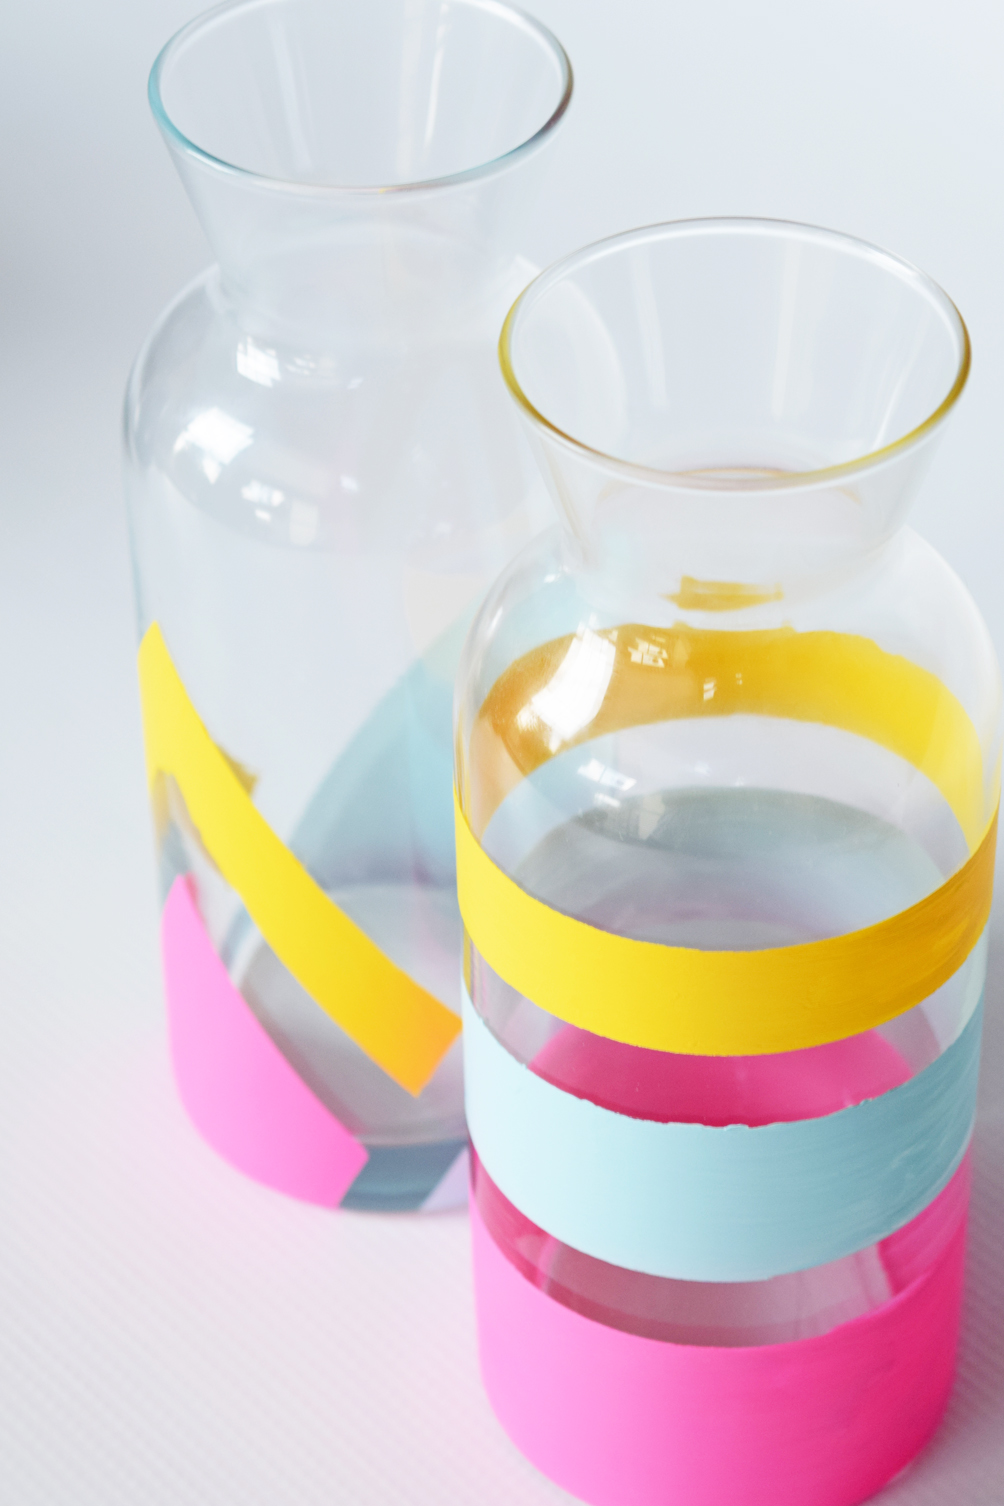 DIY painted carafes tutorial with images